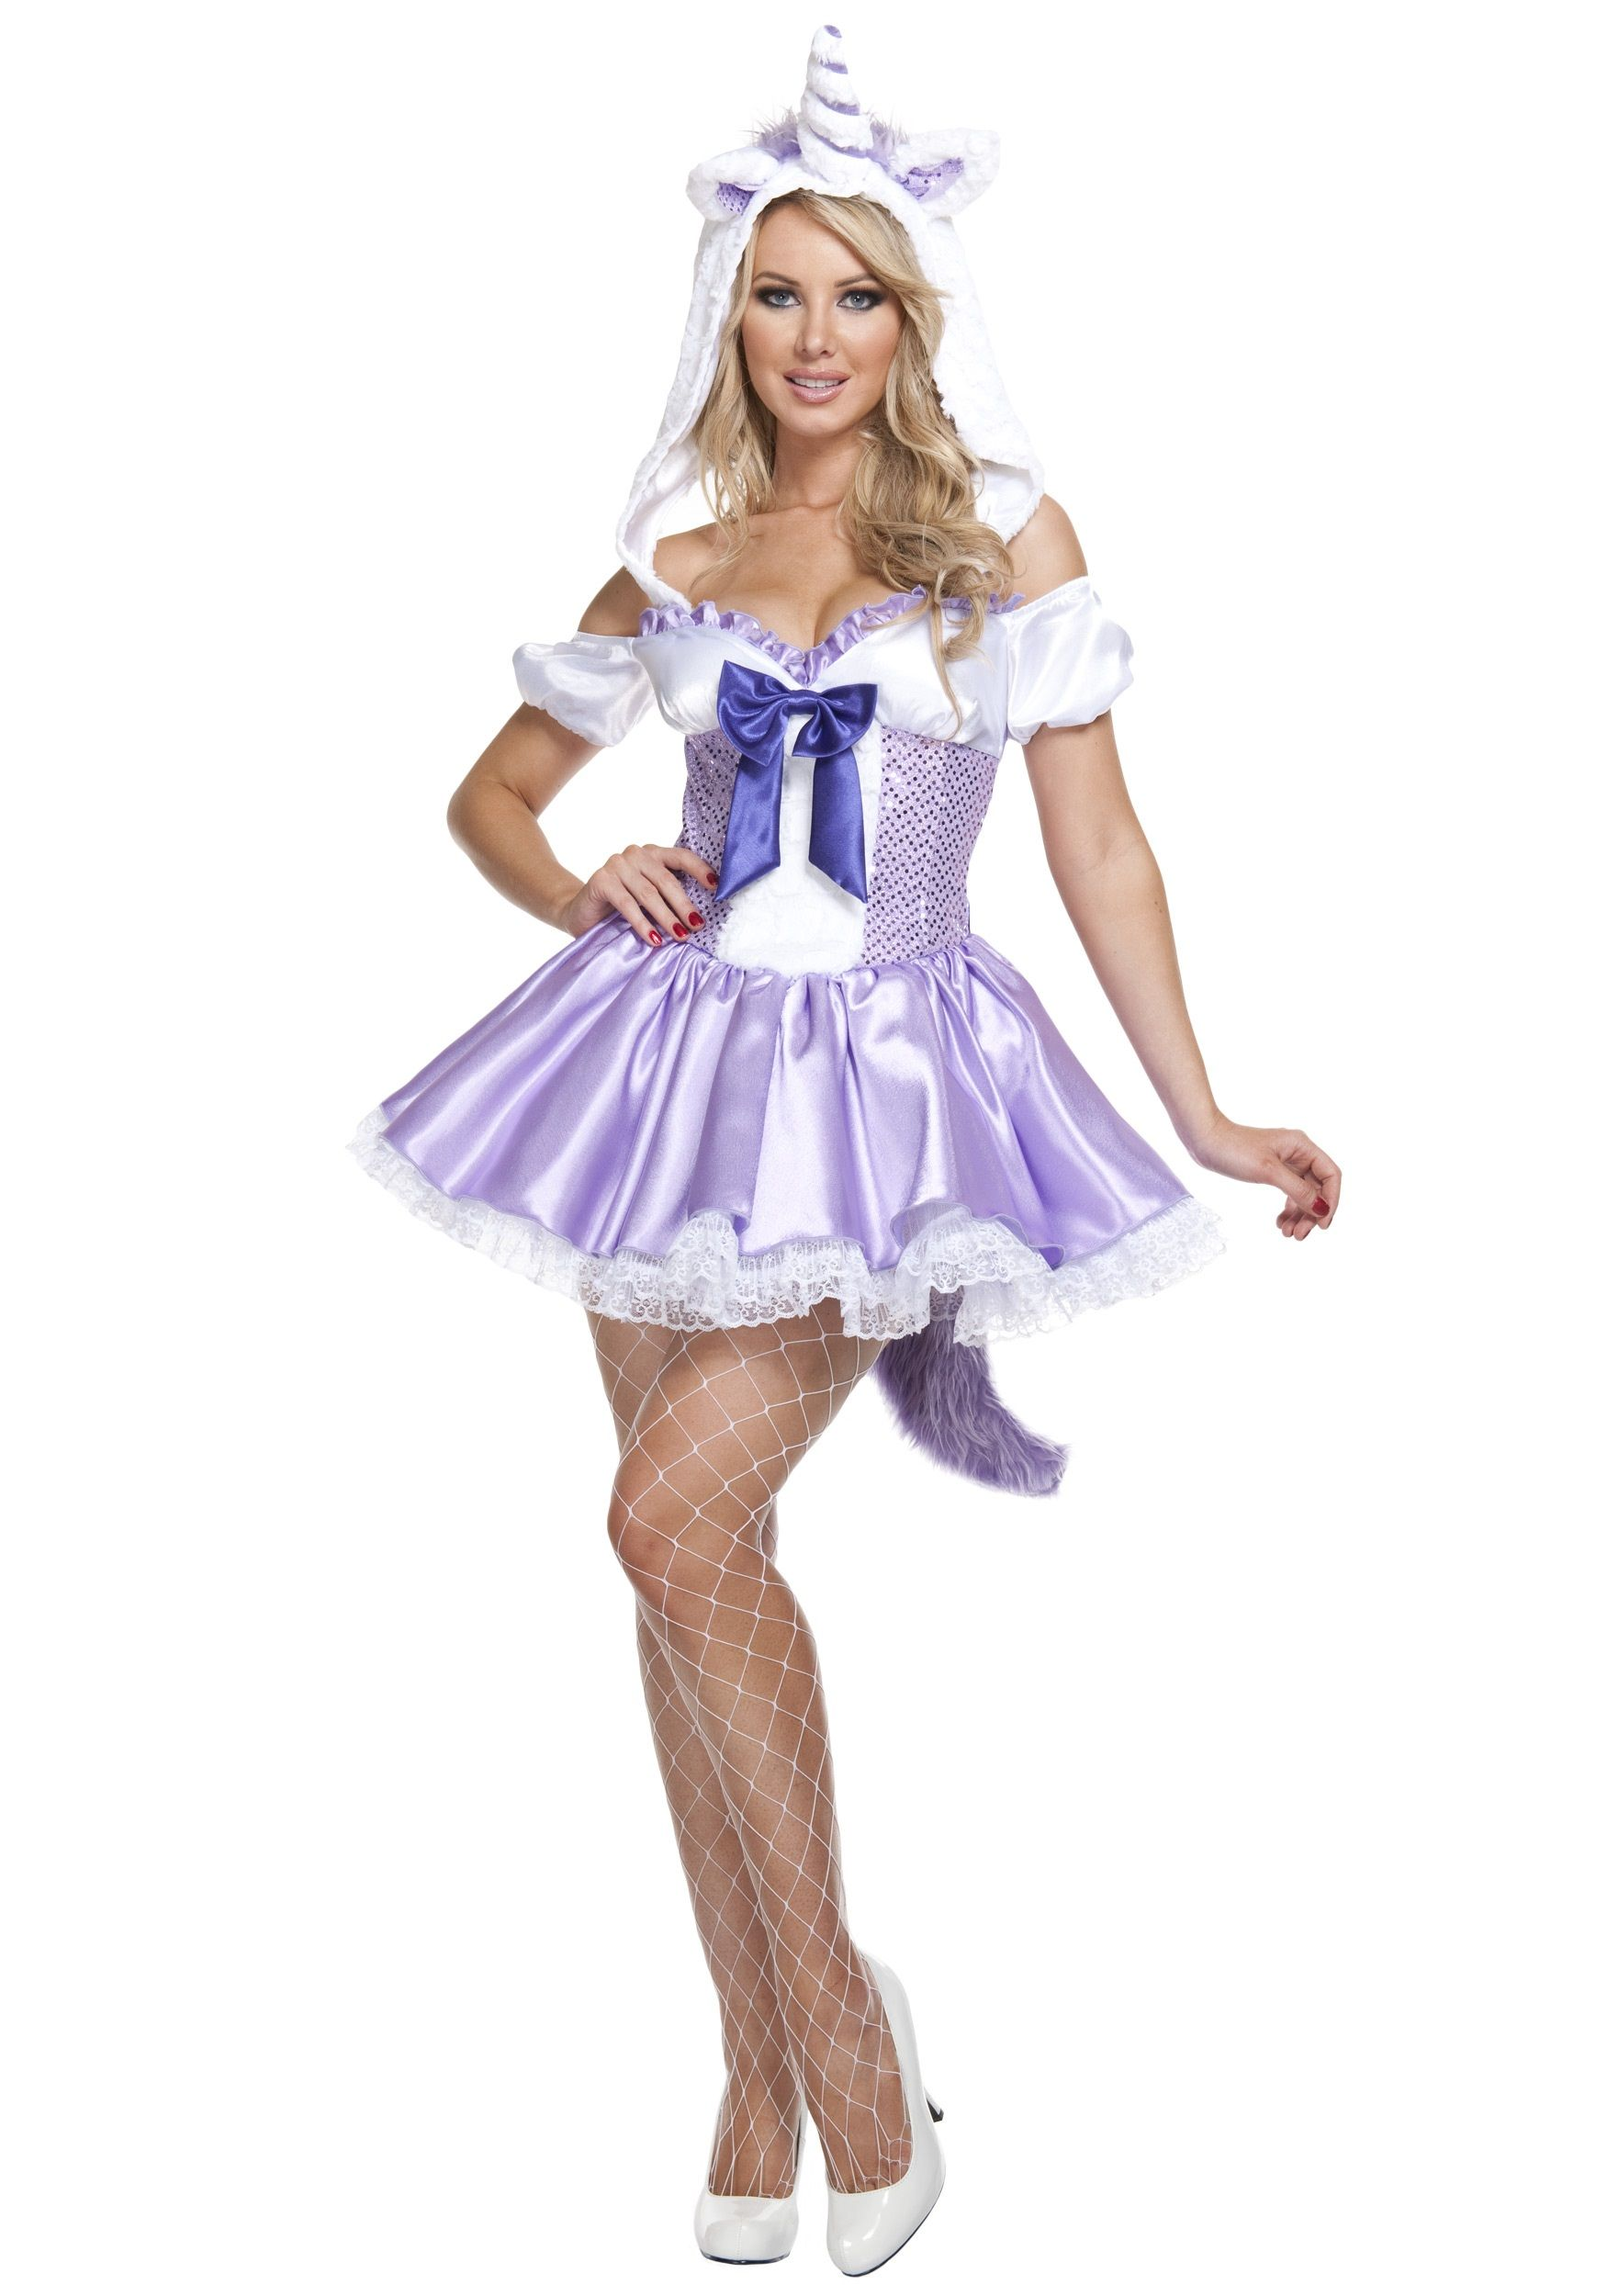 6bf2cfd12de9 Whimsical Unicorn Costume Sexy Halloween | Costumes in 2019 ...